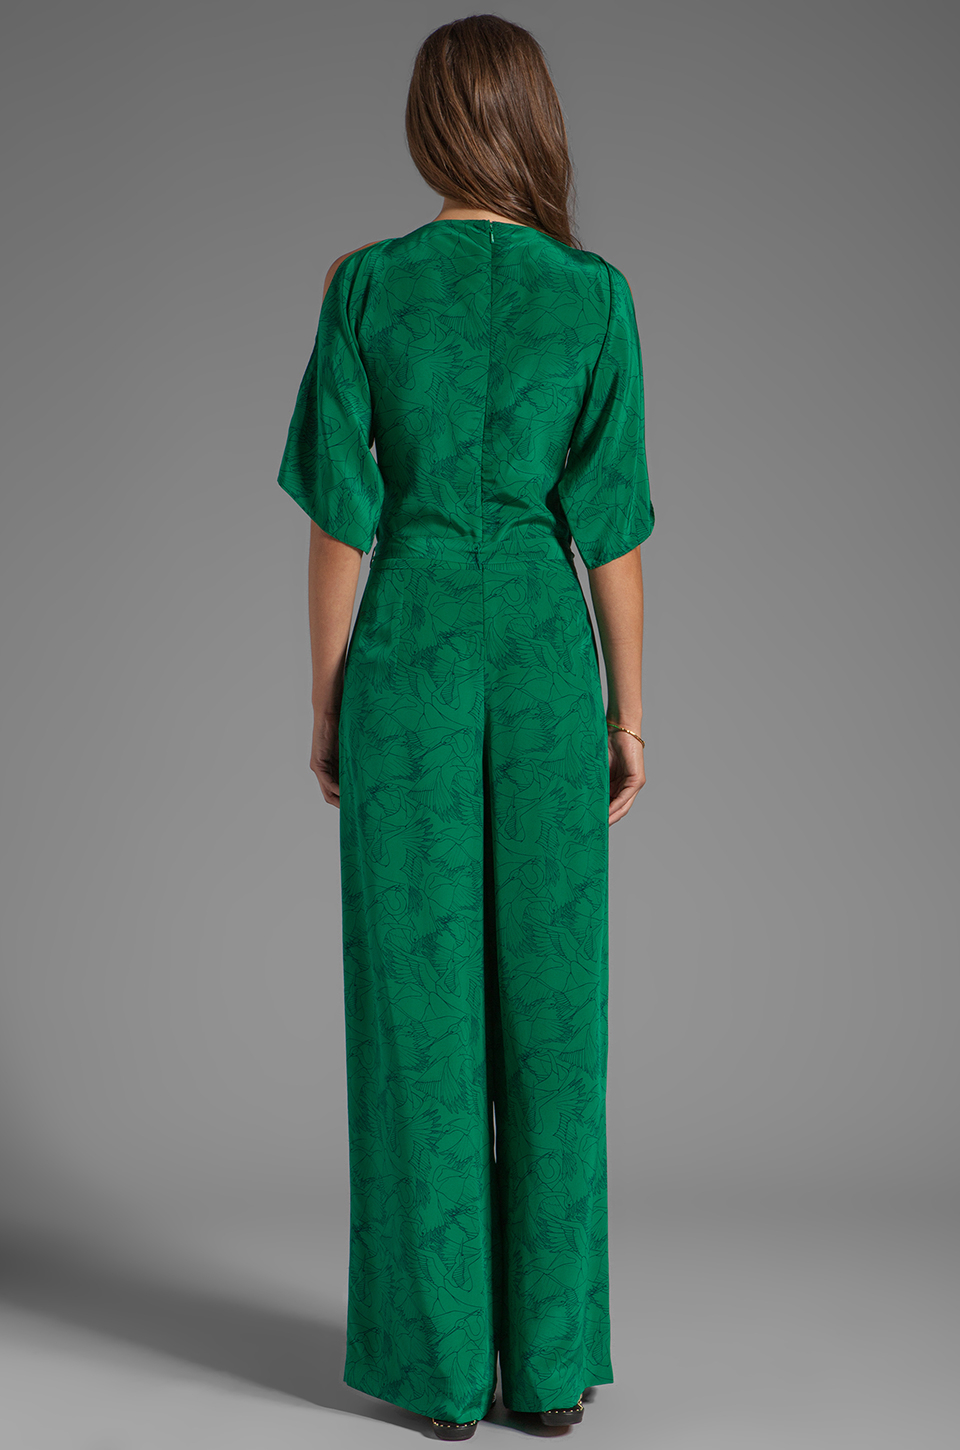 Alice By Temperley Heron Print Jumpsuit In Green In Green